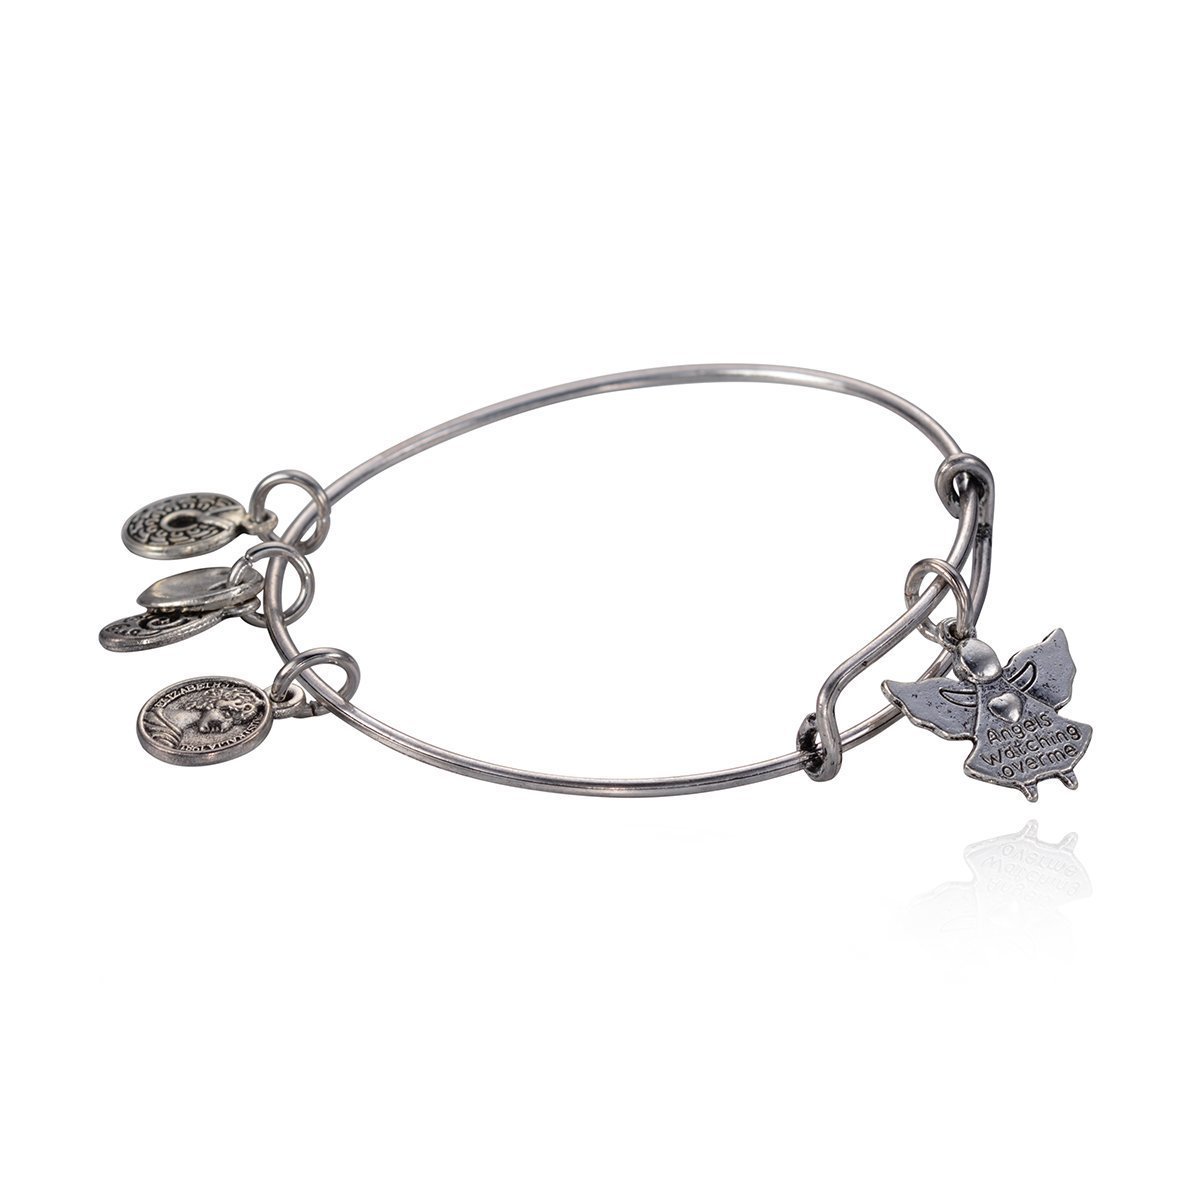 "Antique Silver Tone Expandable Wire Bangle Bracelet with ""Angel"" Pendant"